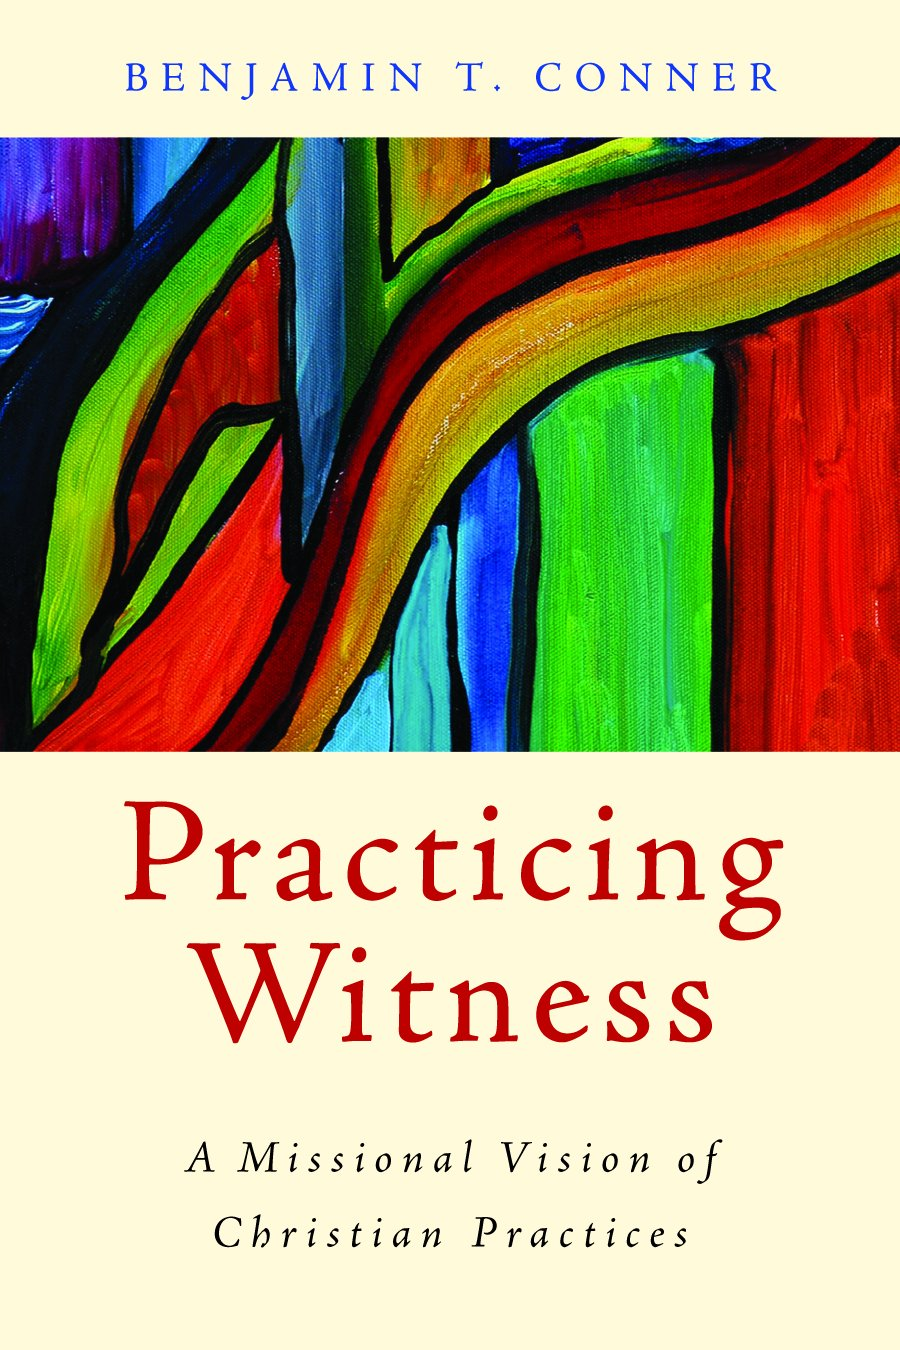 Practicing Witness: A Missional Vision of Christian Practices: Benjamin T.  Conner: 9780802866110: Amazon.com: Books